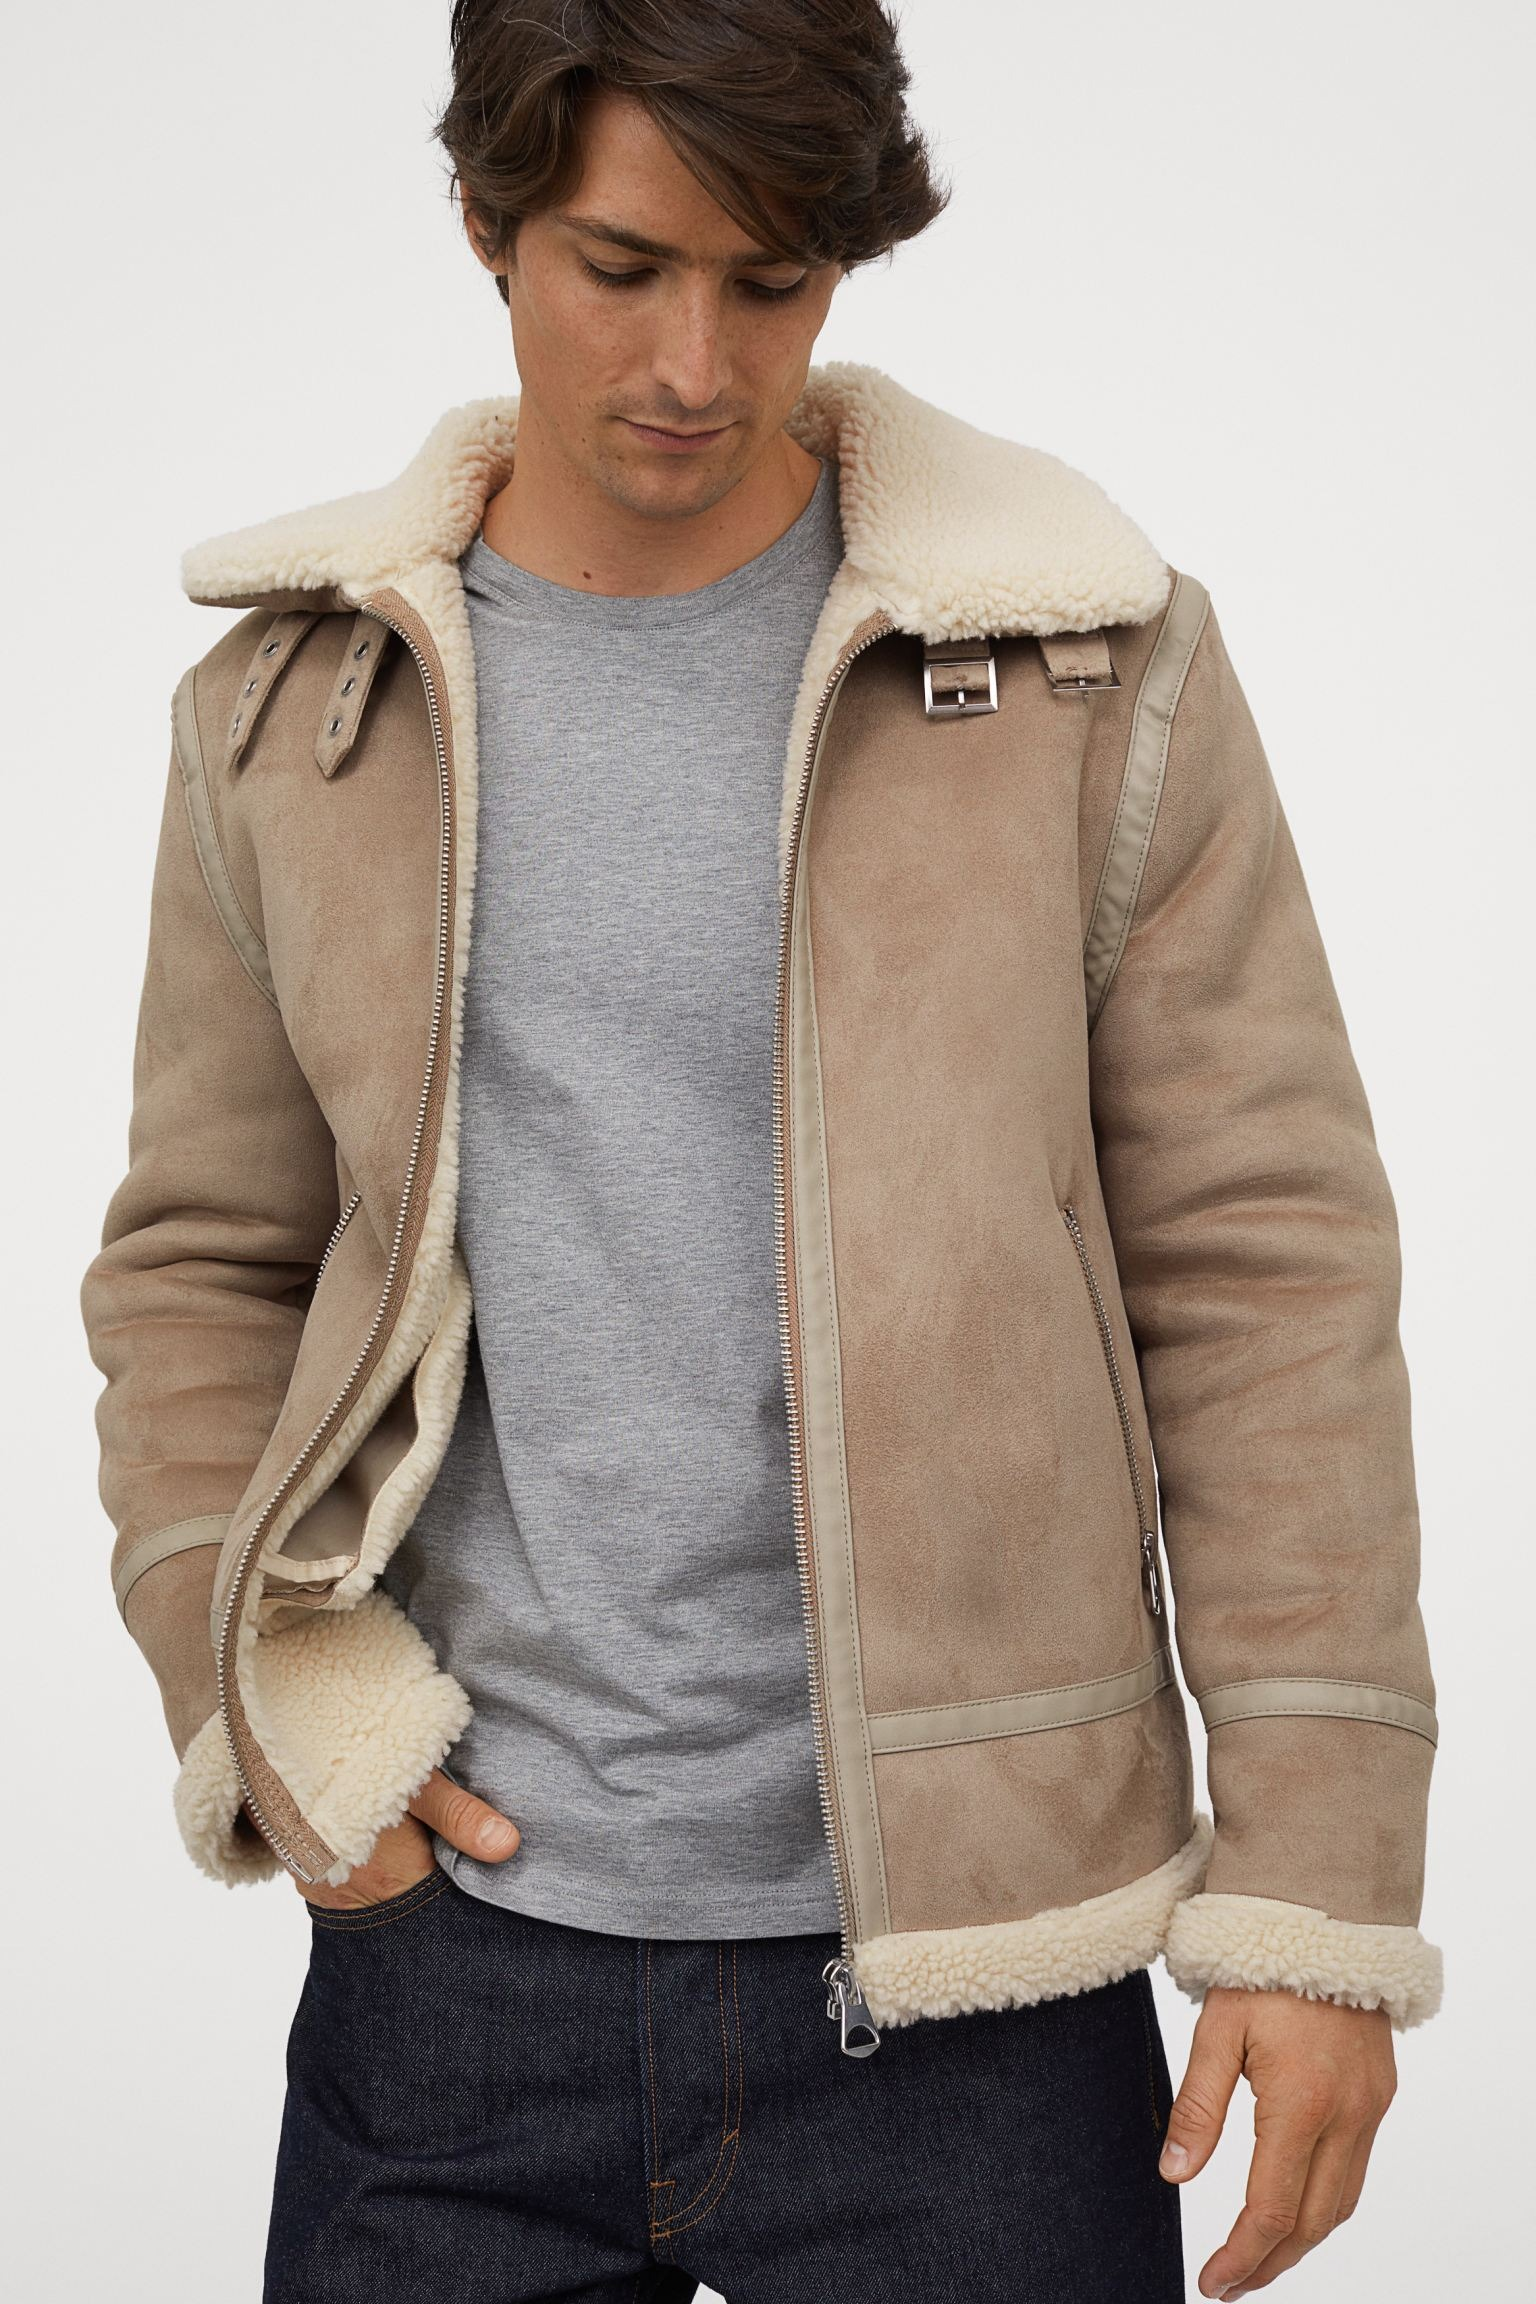 HM-Faux-Shearling-Lined-Jacket Taupe